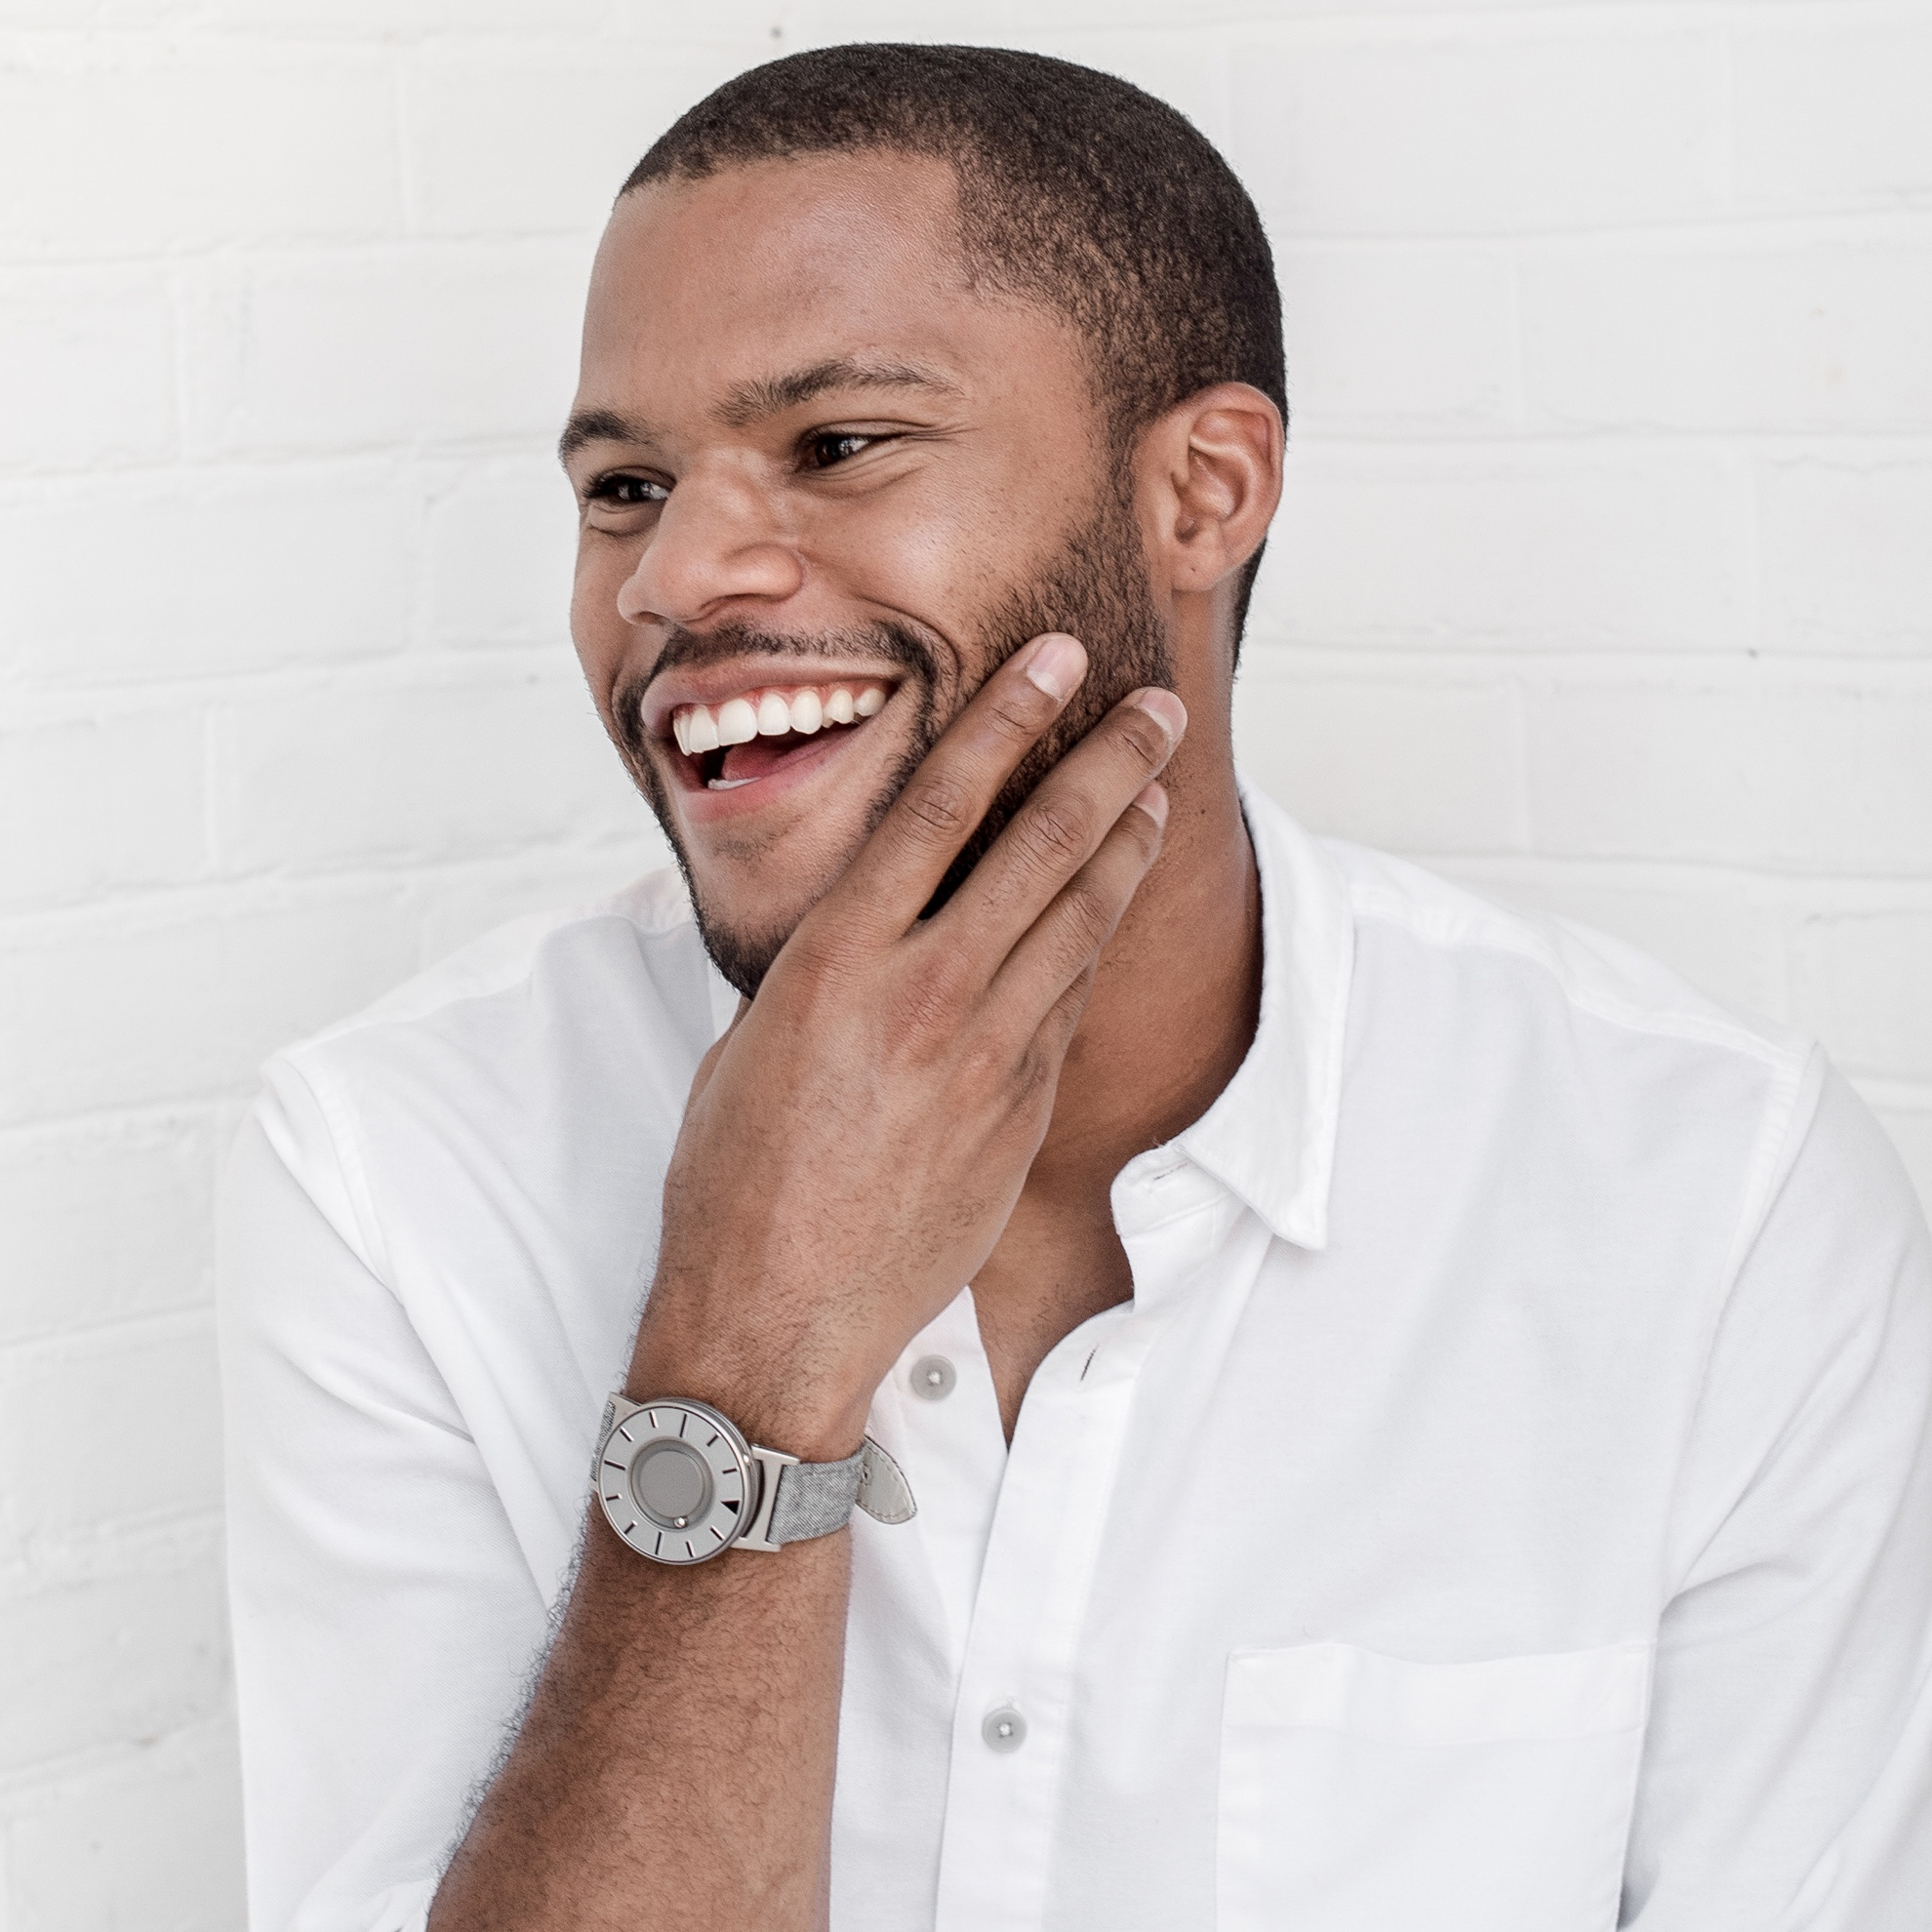 A smiling person wearing a white collared shirt and a silver Eone watch against a white brick wall.